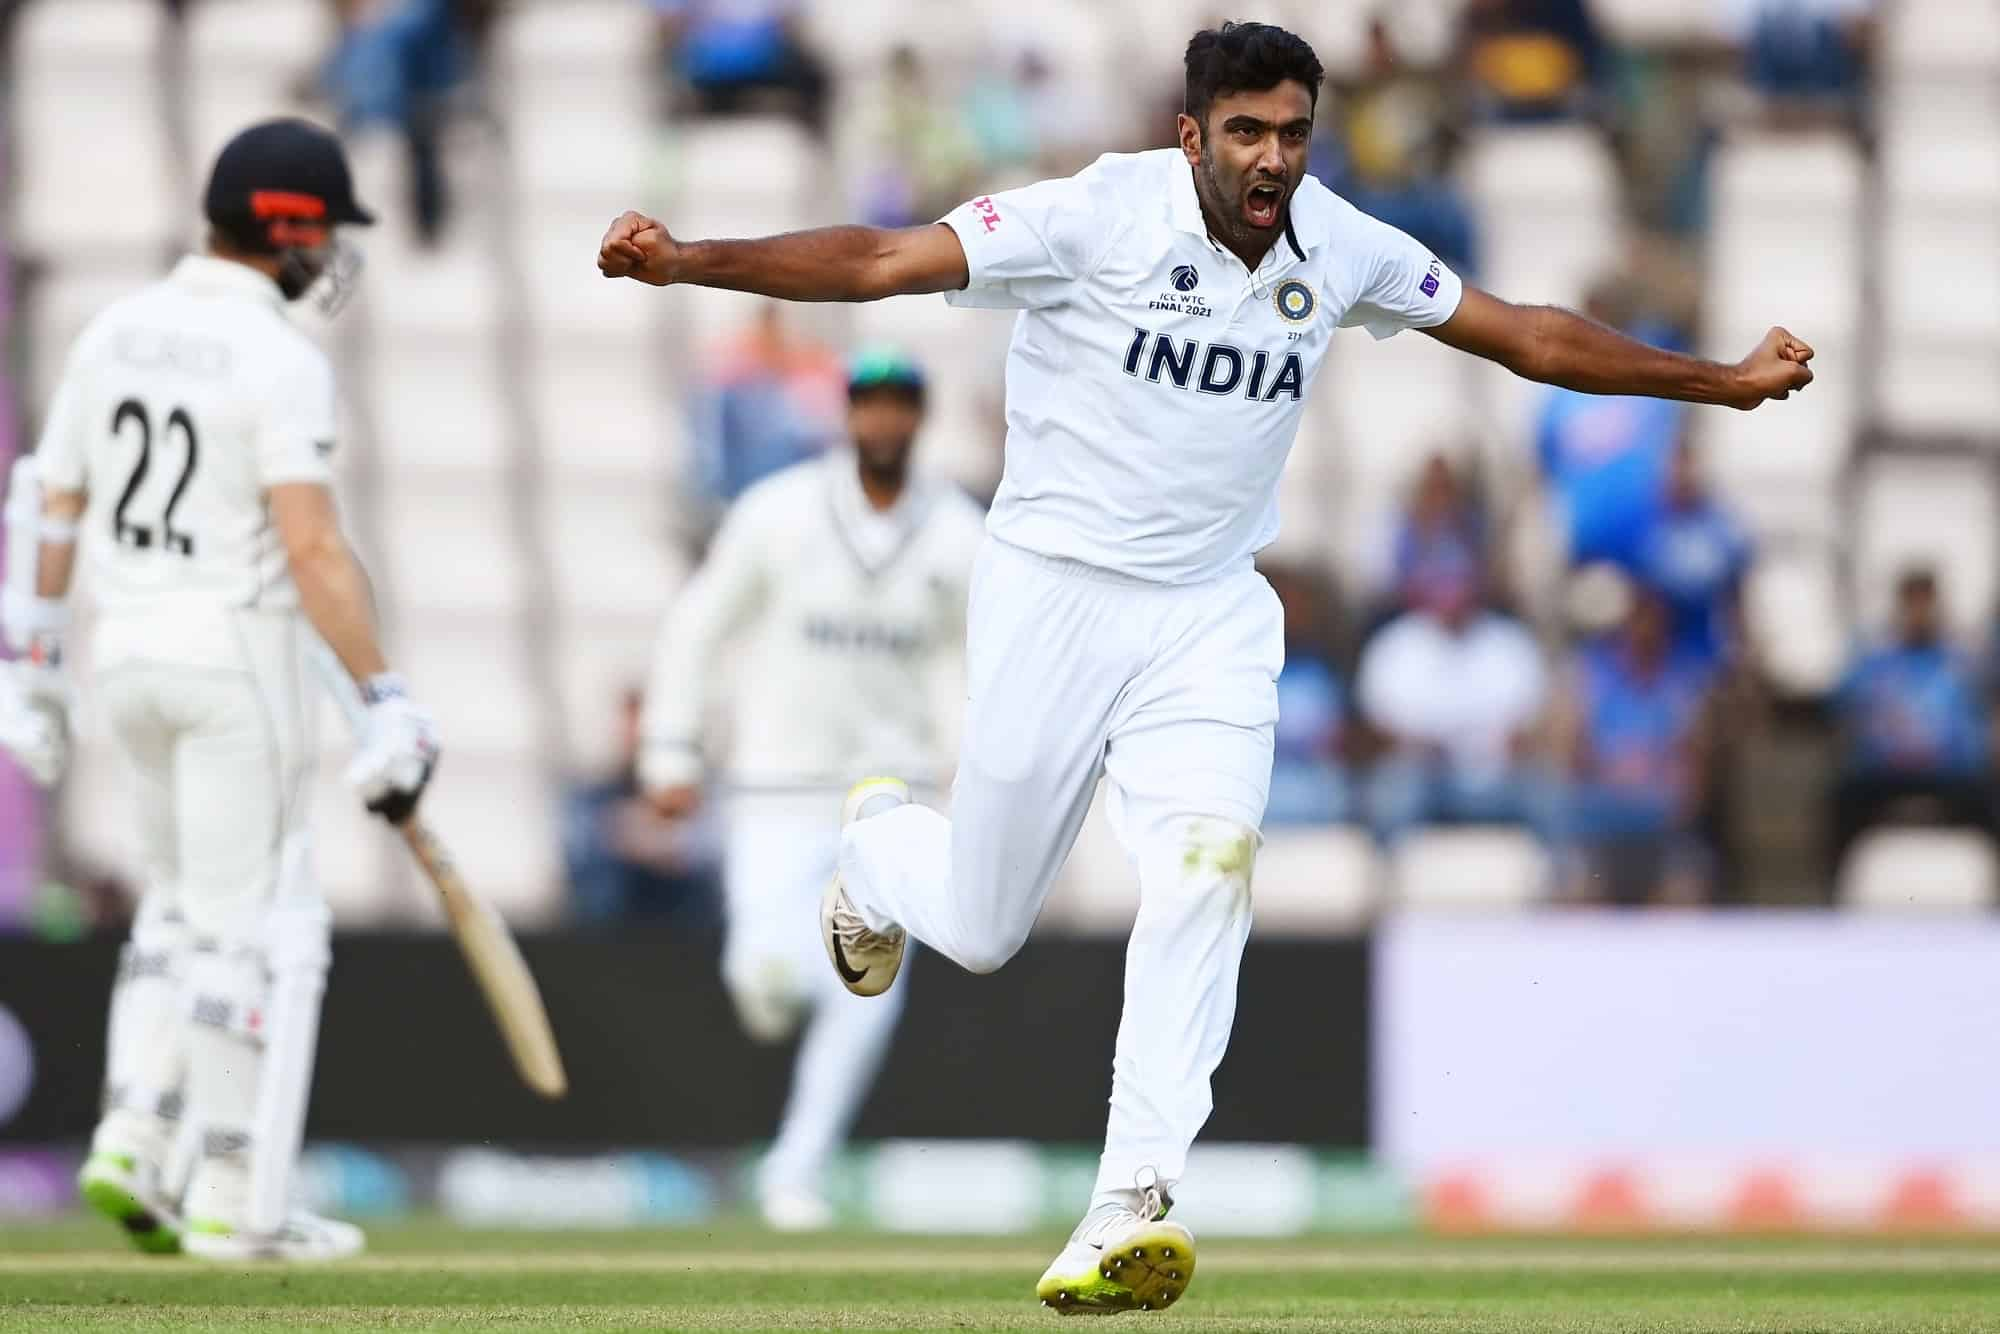 I'd Be Amazed If R Ashwin Doesn't Play At Leeds: Michael Vaughan